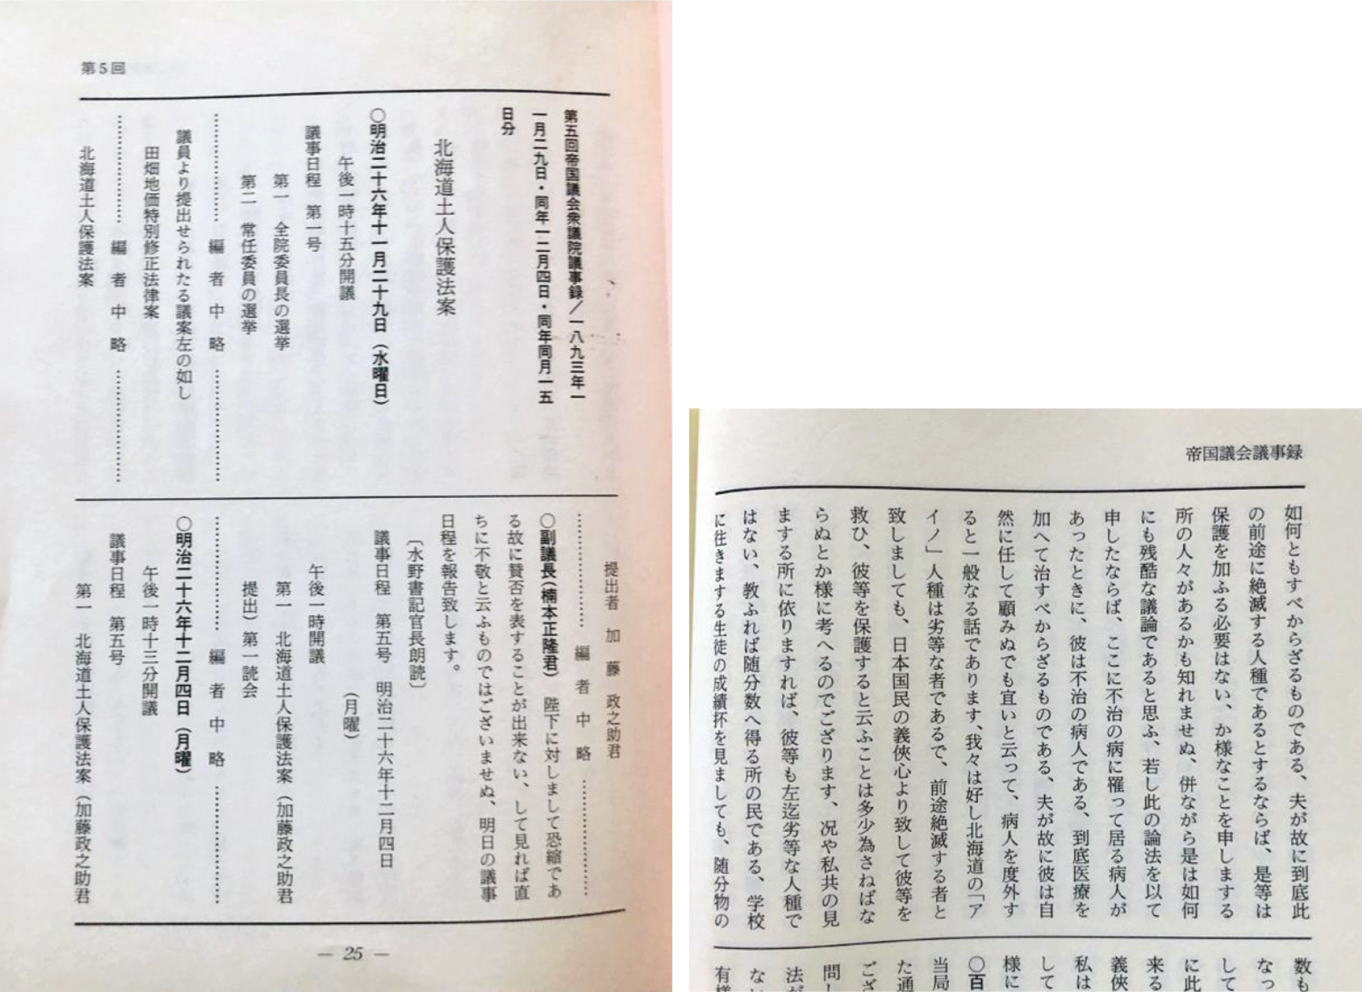 Copy_int_cerd_ngo_jpn_31750_e02007